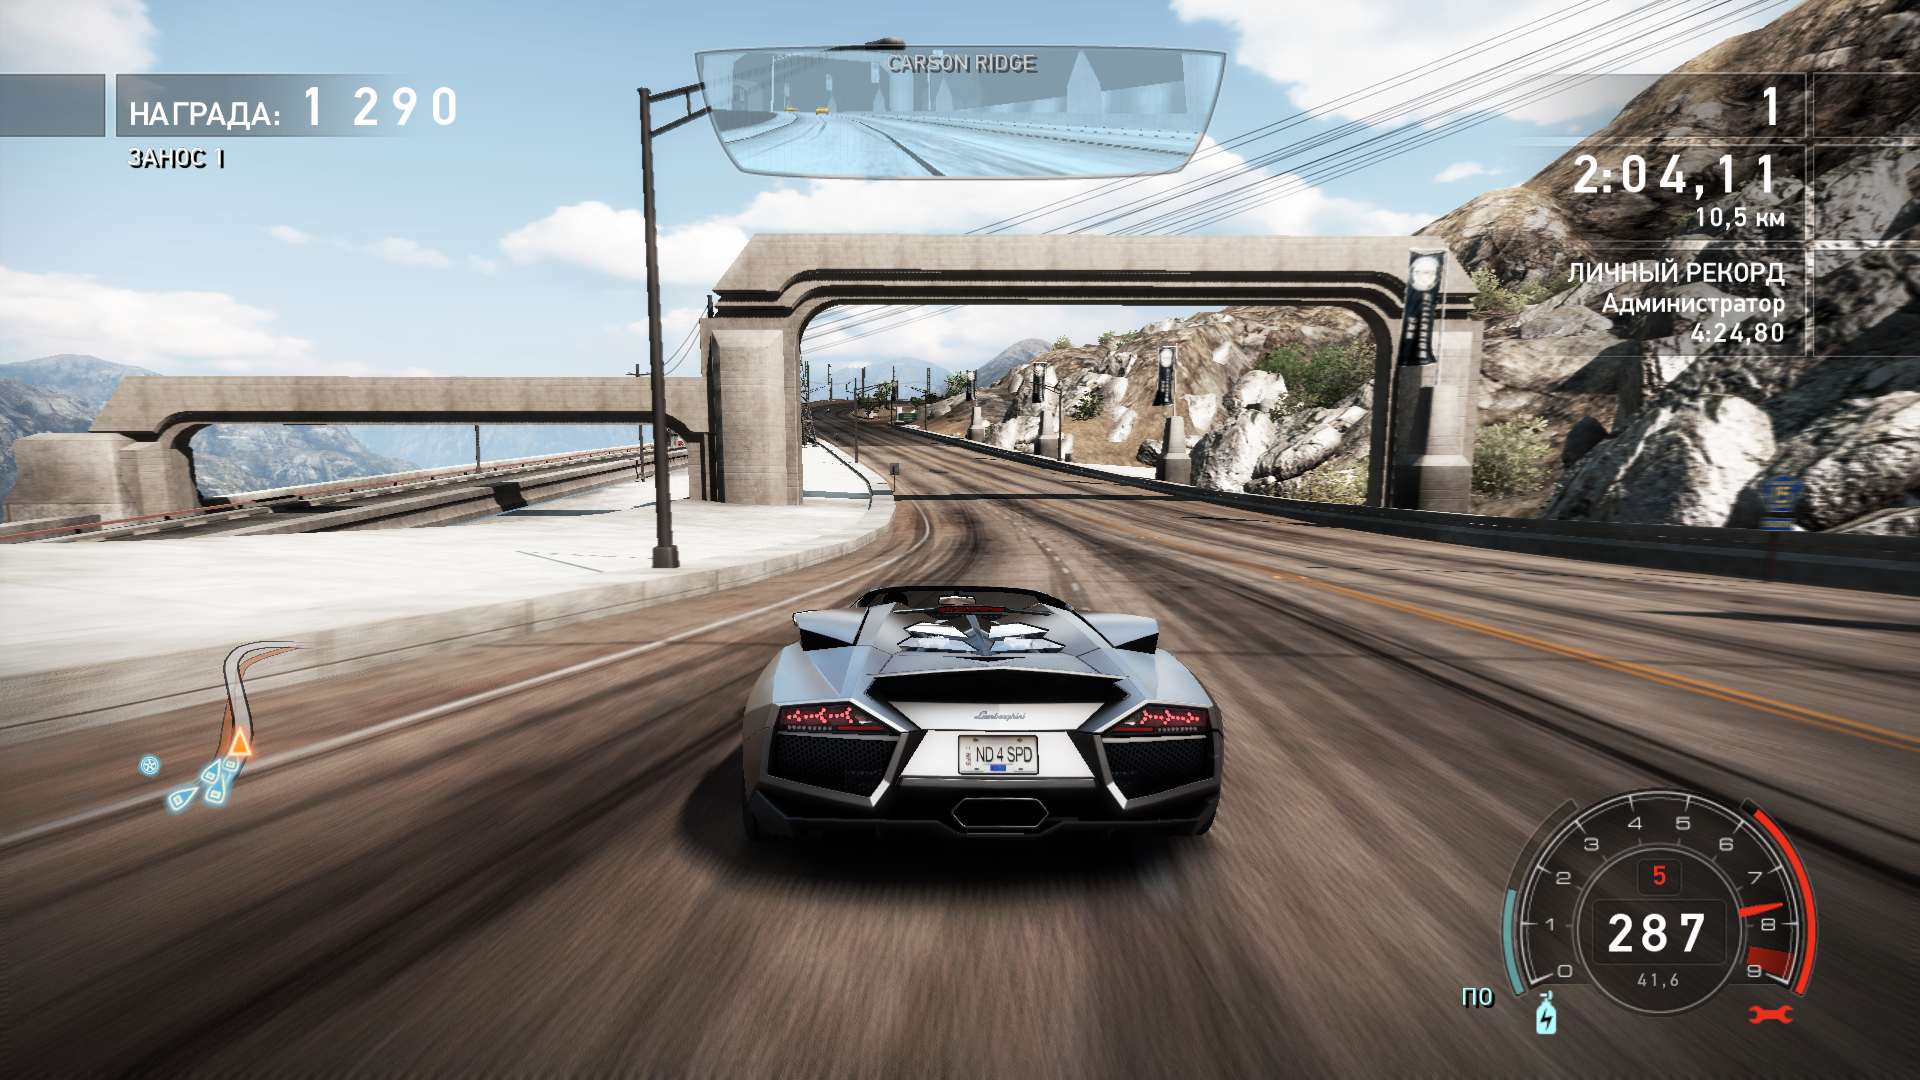 Need for Speed: Hot Pursuit Windows That's a Lamborghini Reventón Roadster, no wonder I'm in the lead.